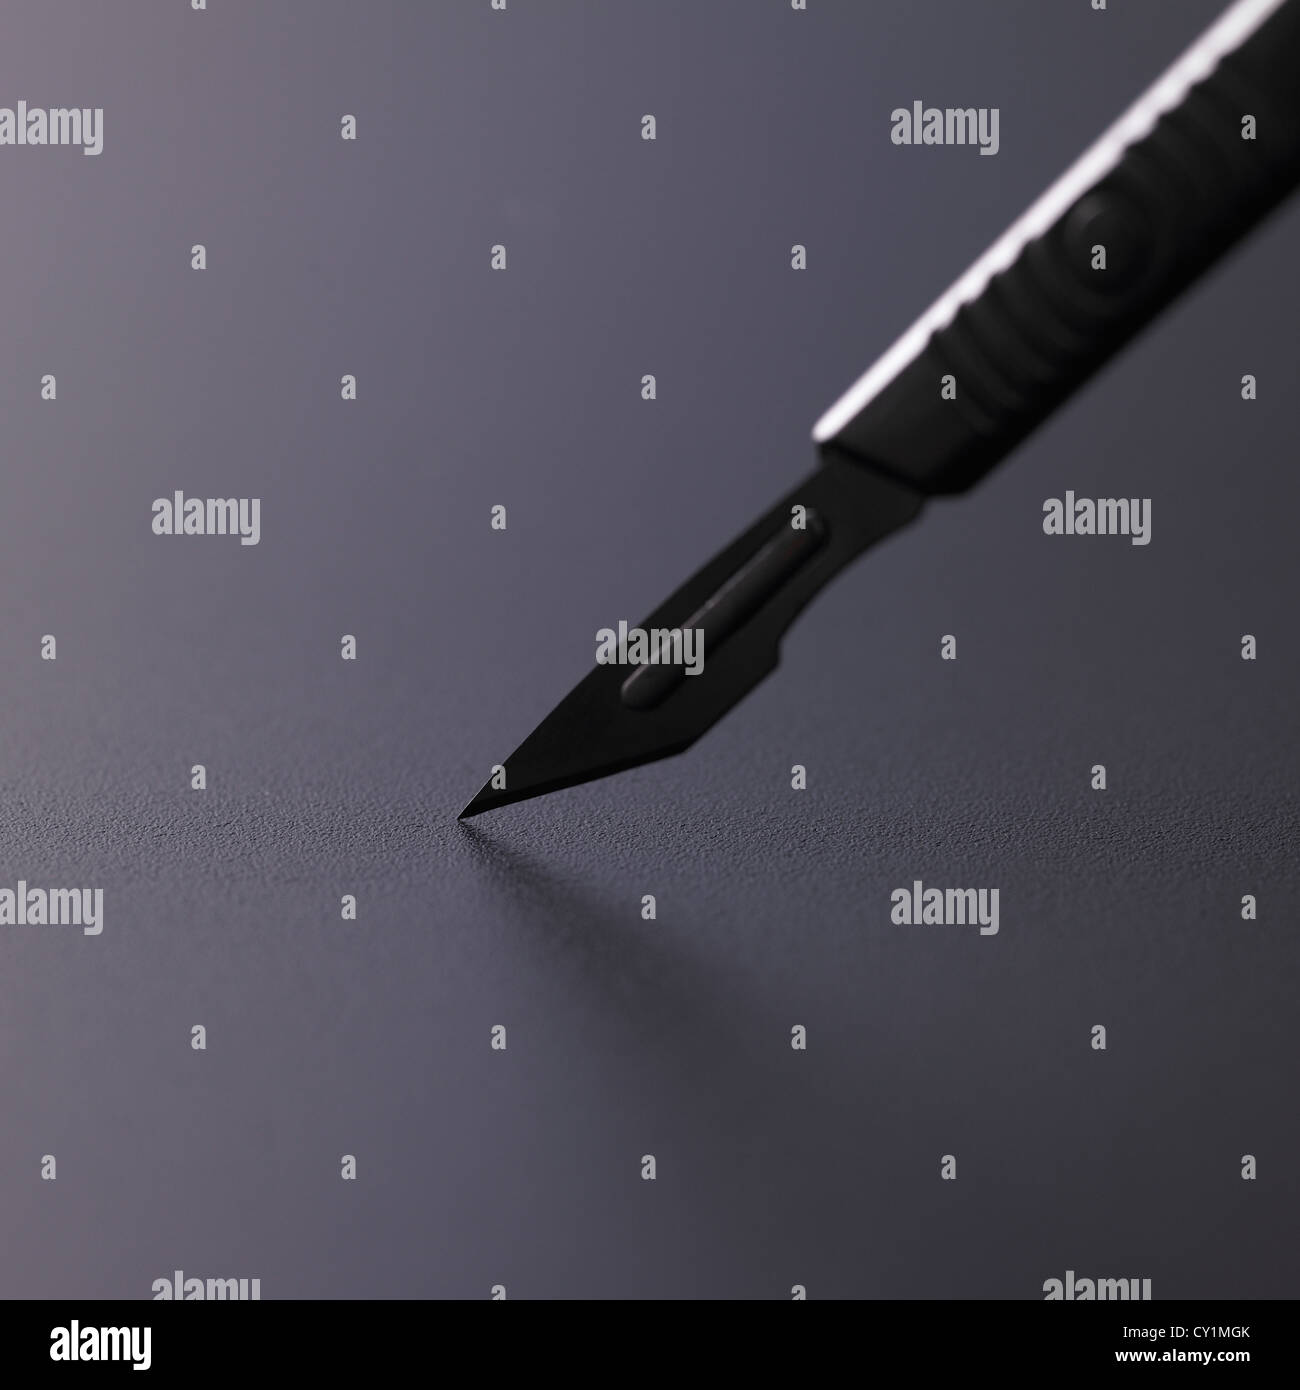 Surgical scalpel closeup with blade tip touching grey metallic worktop, differential focus - Stock Image